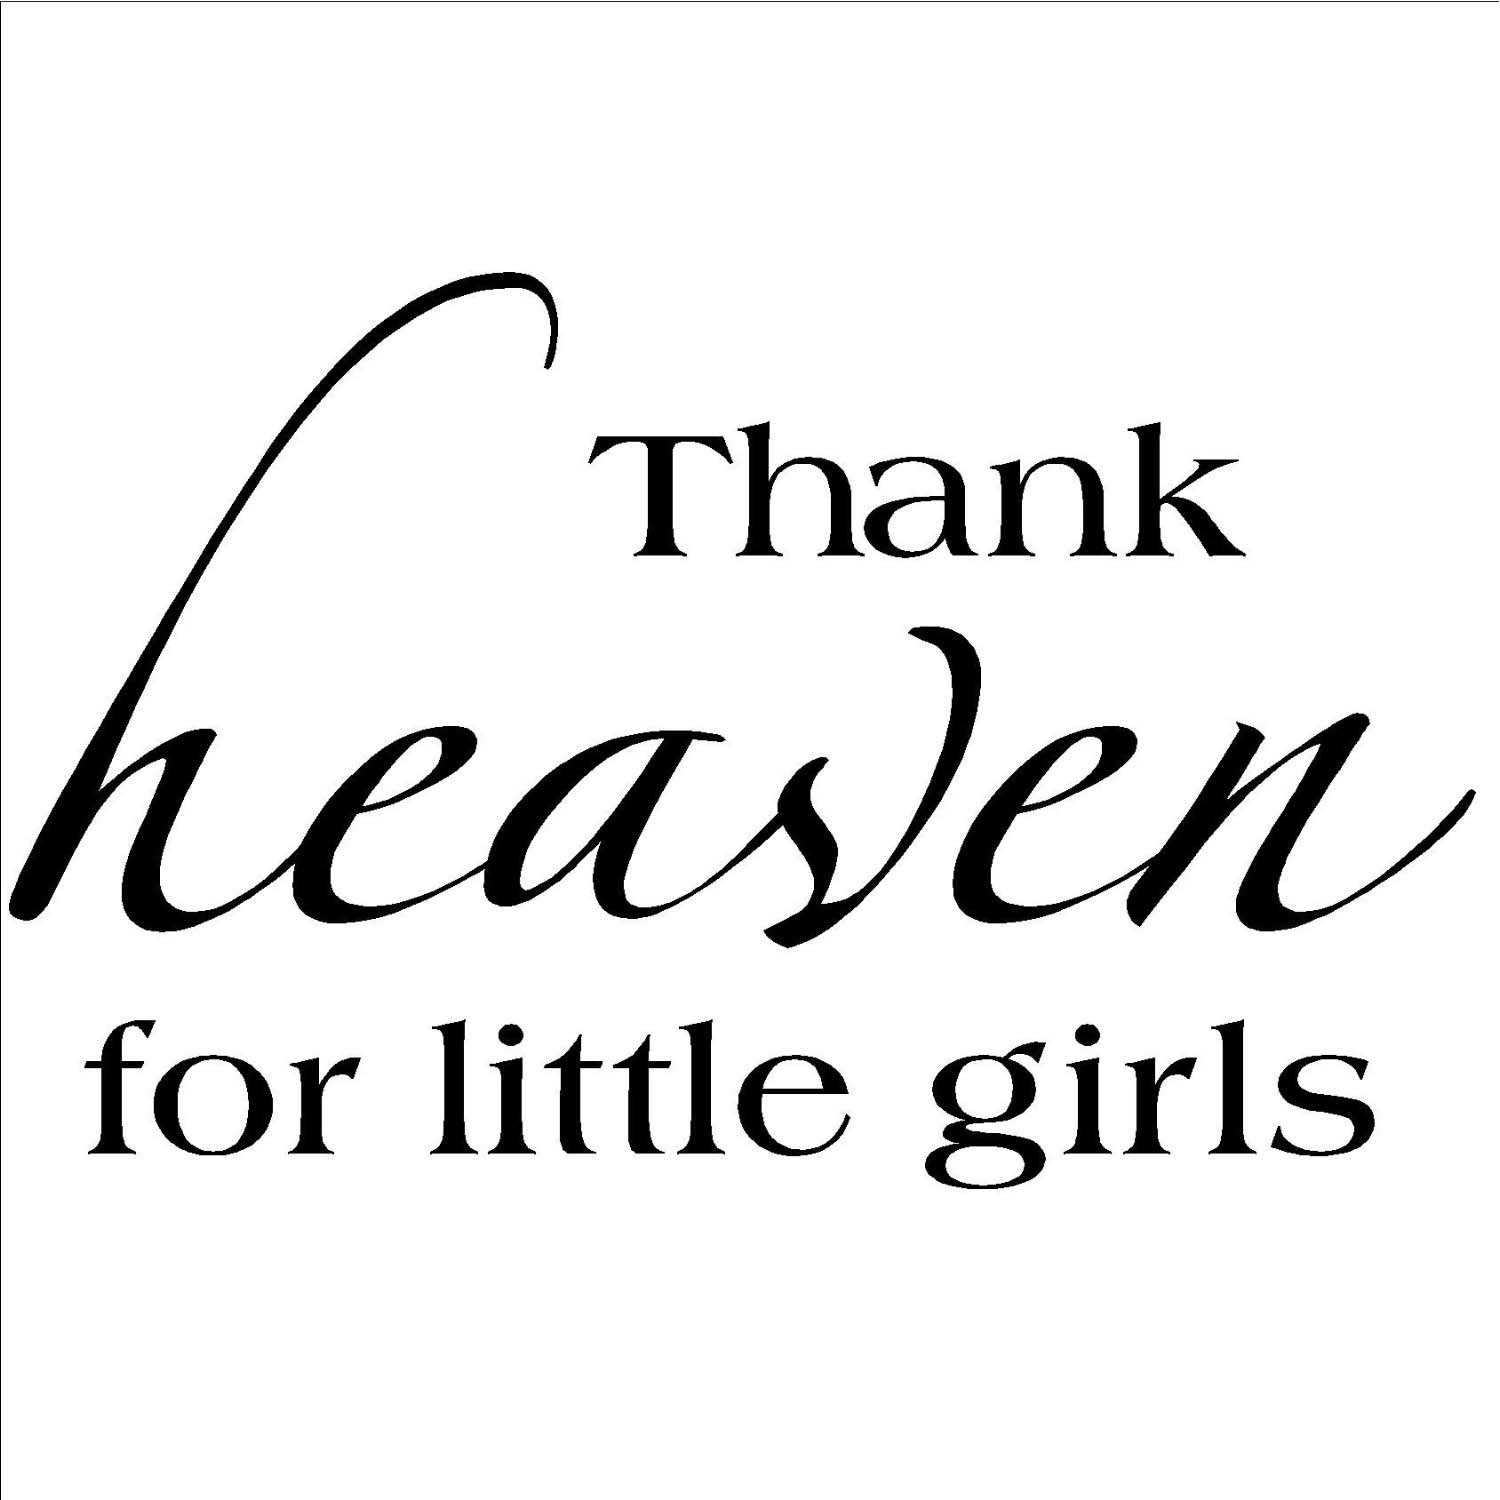 Vinyl Designs 'Thank Heavens for Little Girls' Vinyl Wall Art Lettering